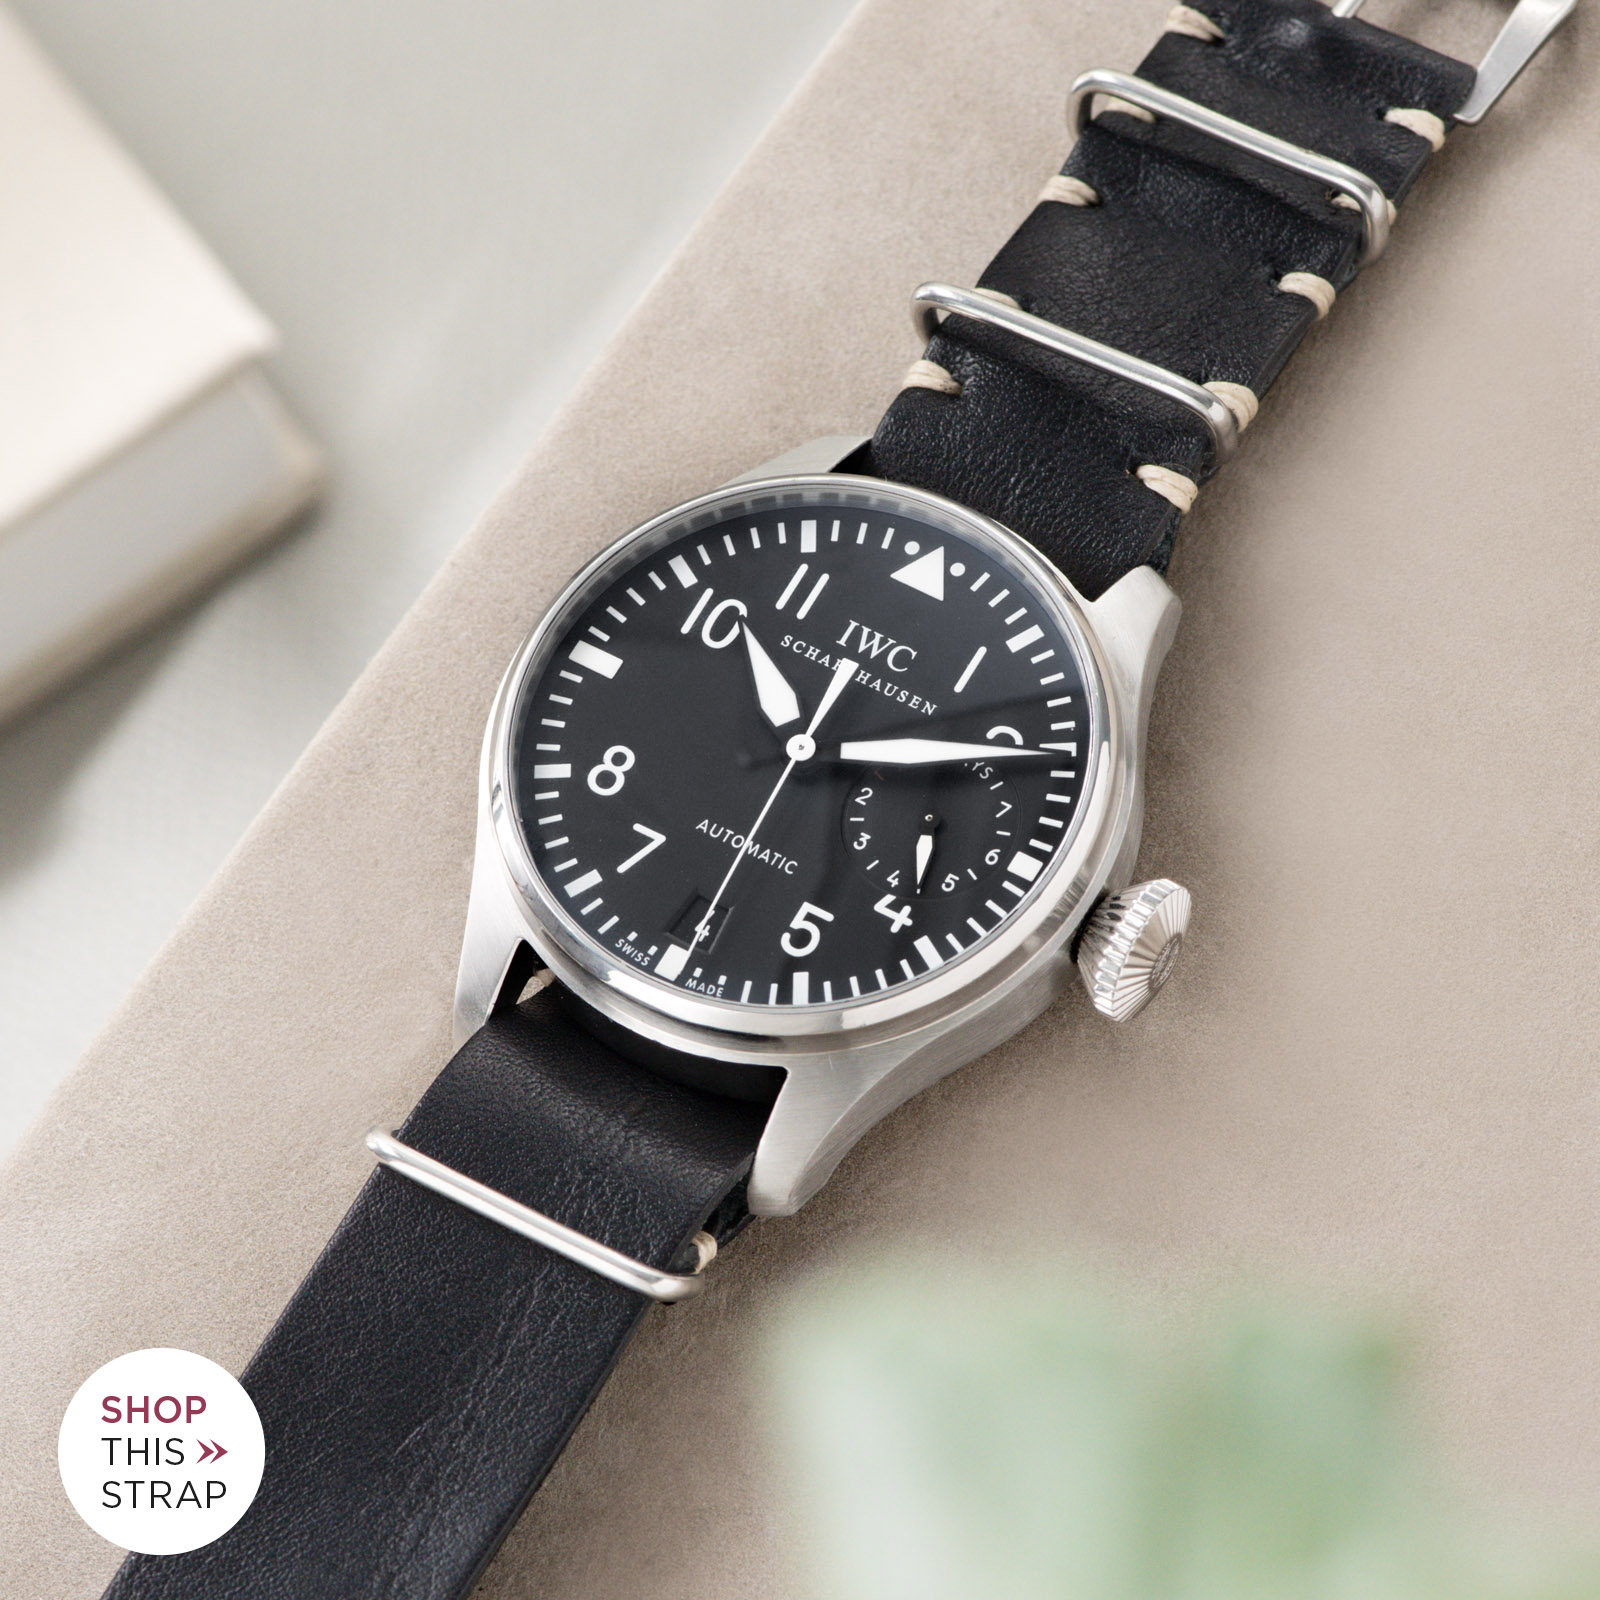 Bulang and Sons_Strap Guide_IWC Big Pilot ref IW5004_Black Nato Leather Watch Strap